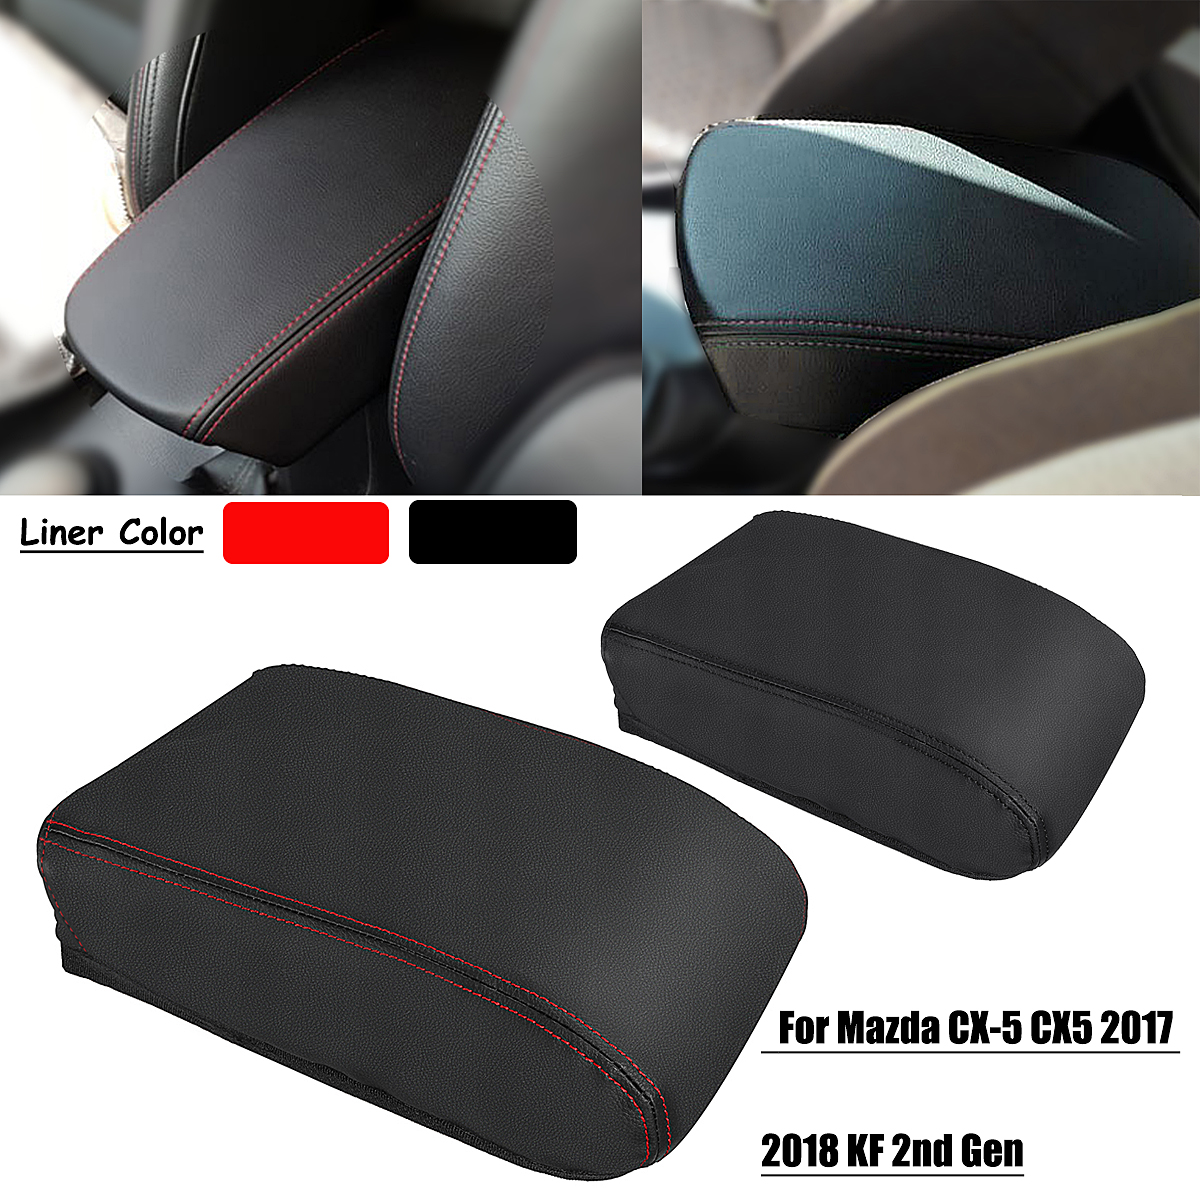 Car Console Seat Armrest Box Cover PU Center Shell for <font><b>Mazda</b></font> CX-5 <font><b>CX5</b></font> 2017 2018 KF 2nd Car Styling <font><b>Accessories</b></font> image